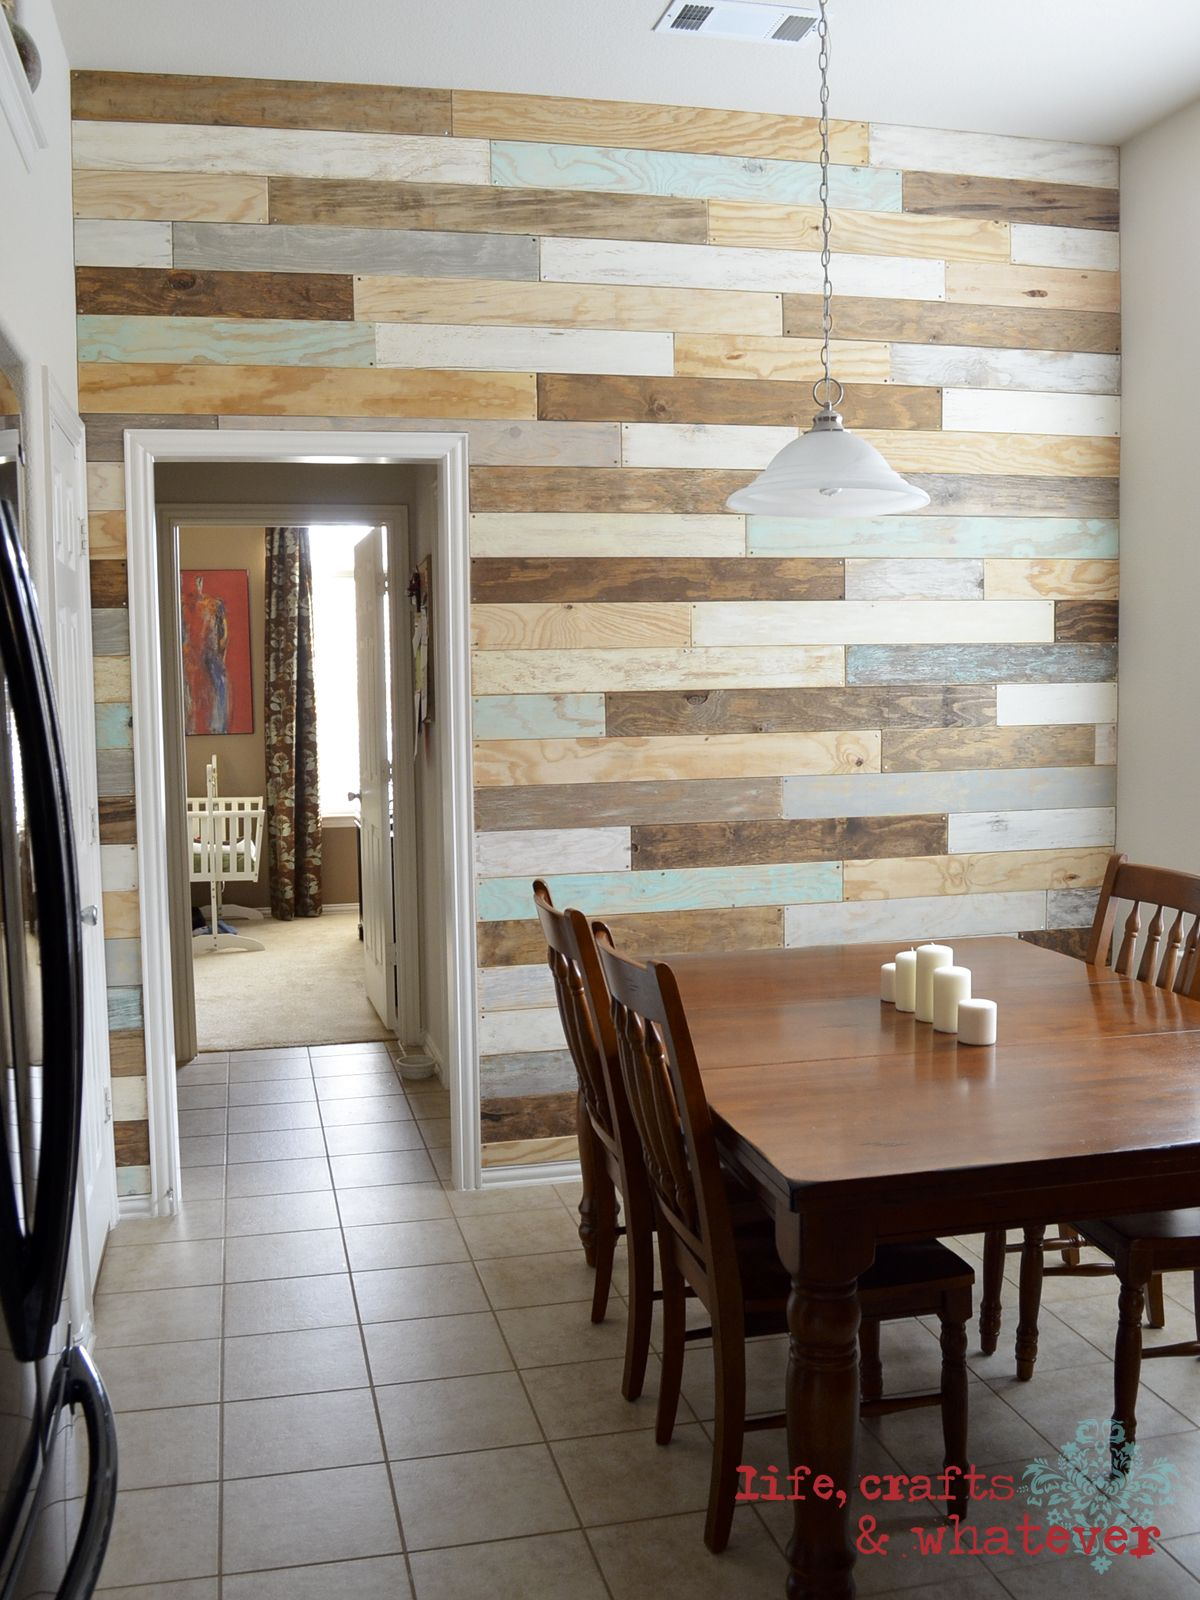 My Plank Wall Finally Plank Walls Diy Pallet Wall Wood Plank